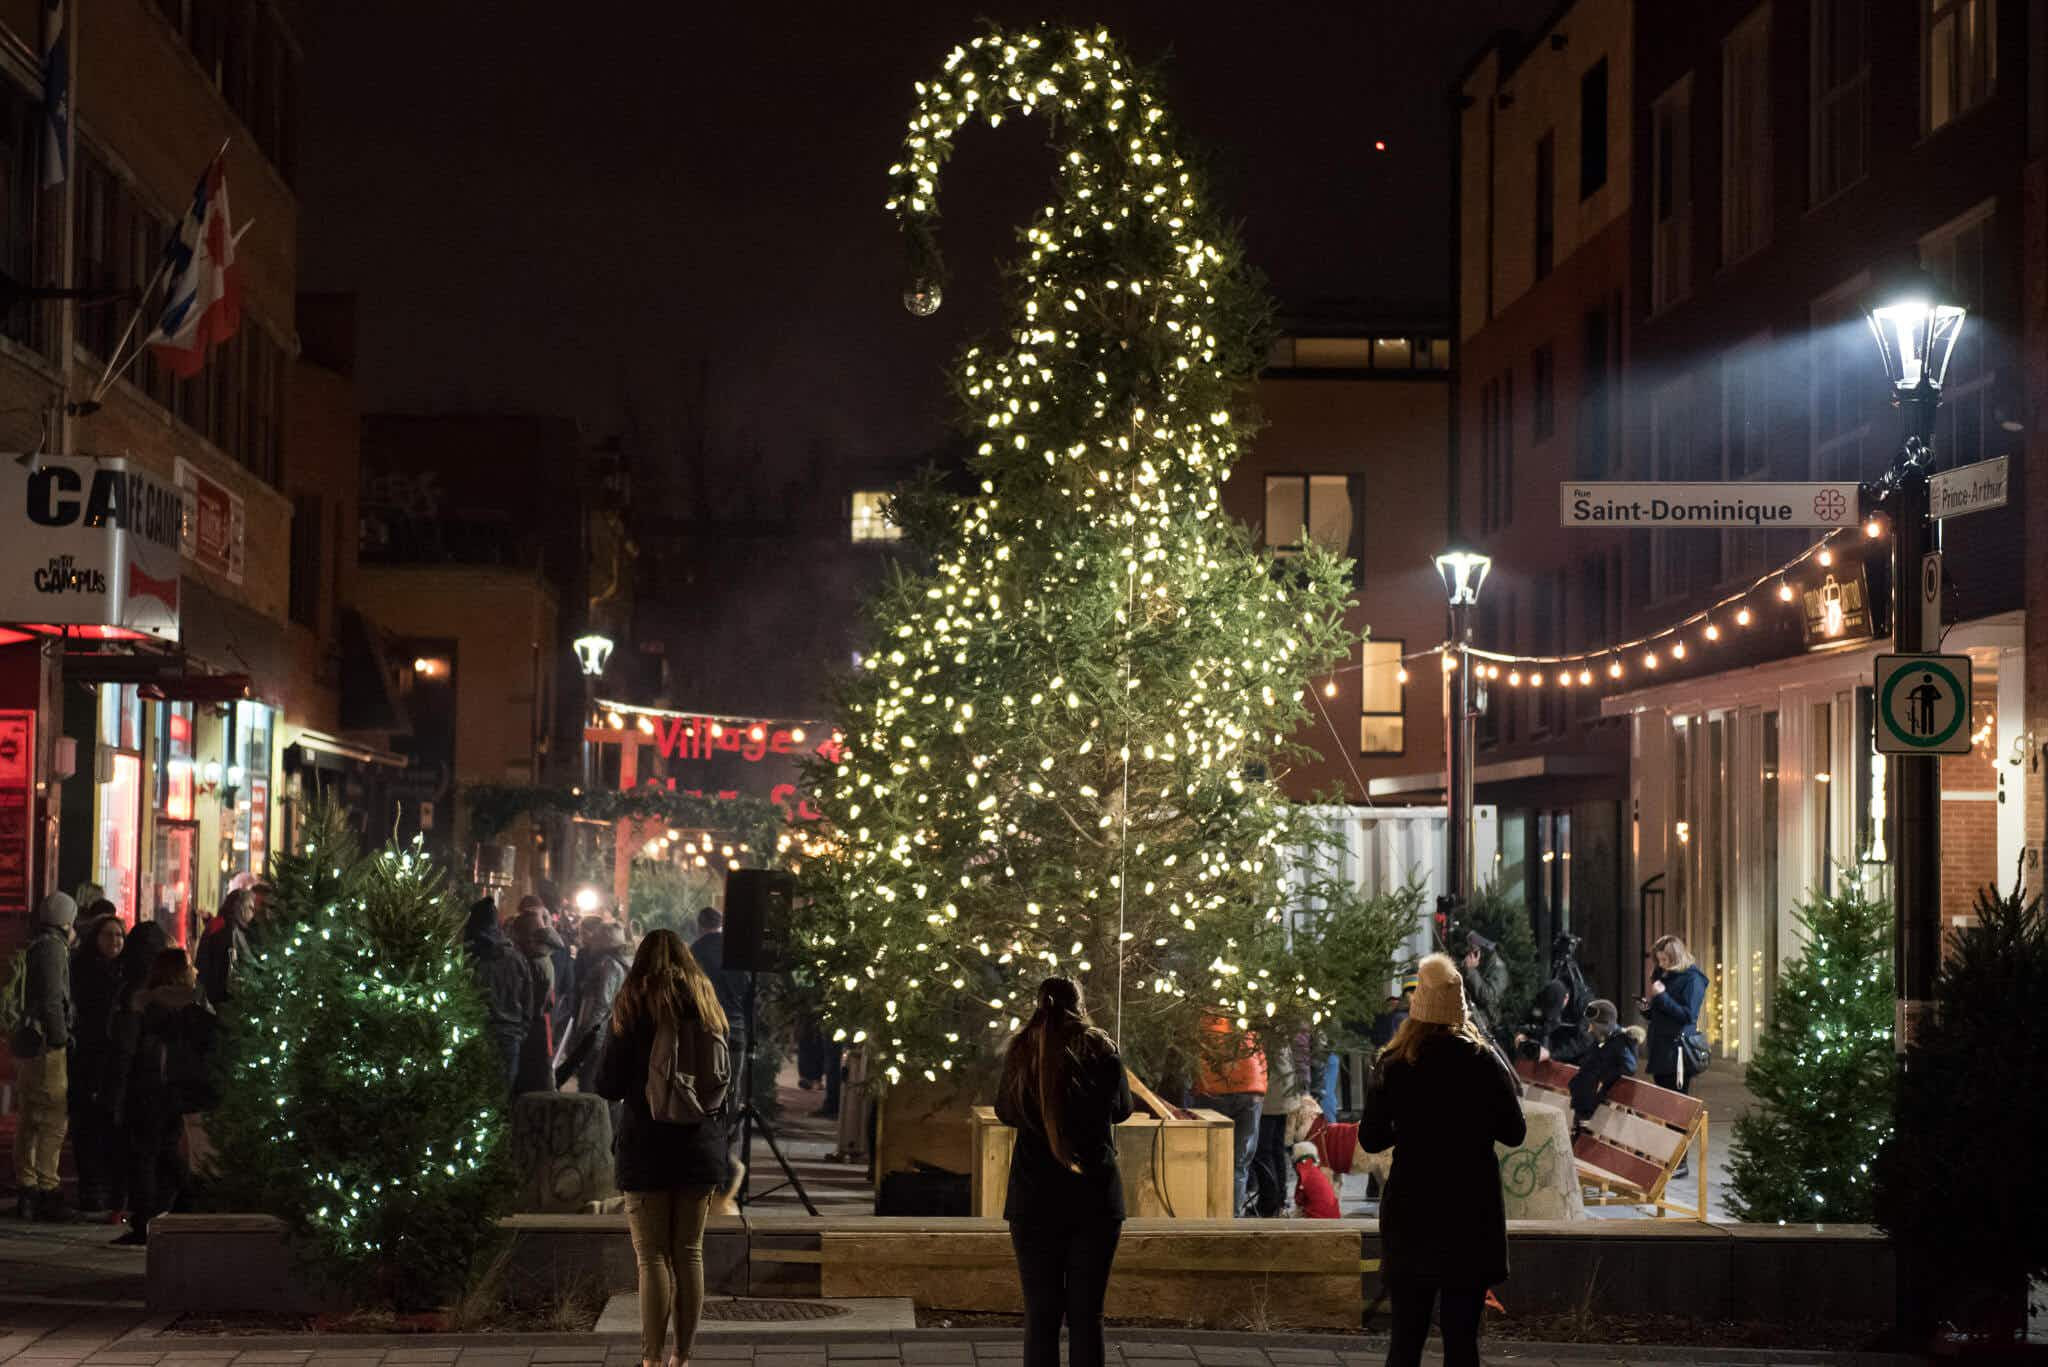 Montréal's ugly Christmas tree returns this year to start a new festive tradition